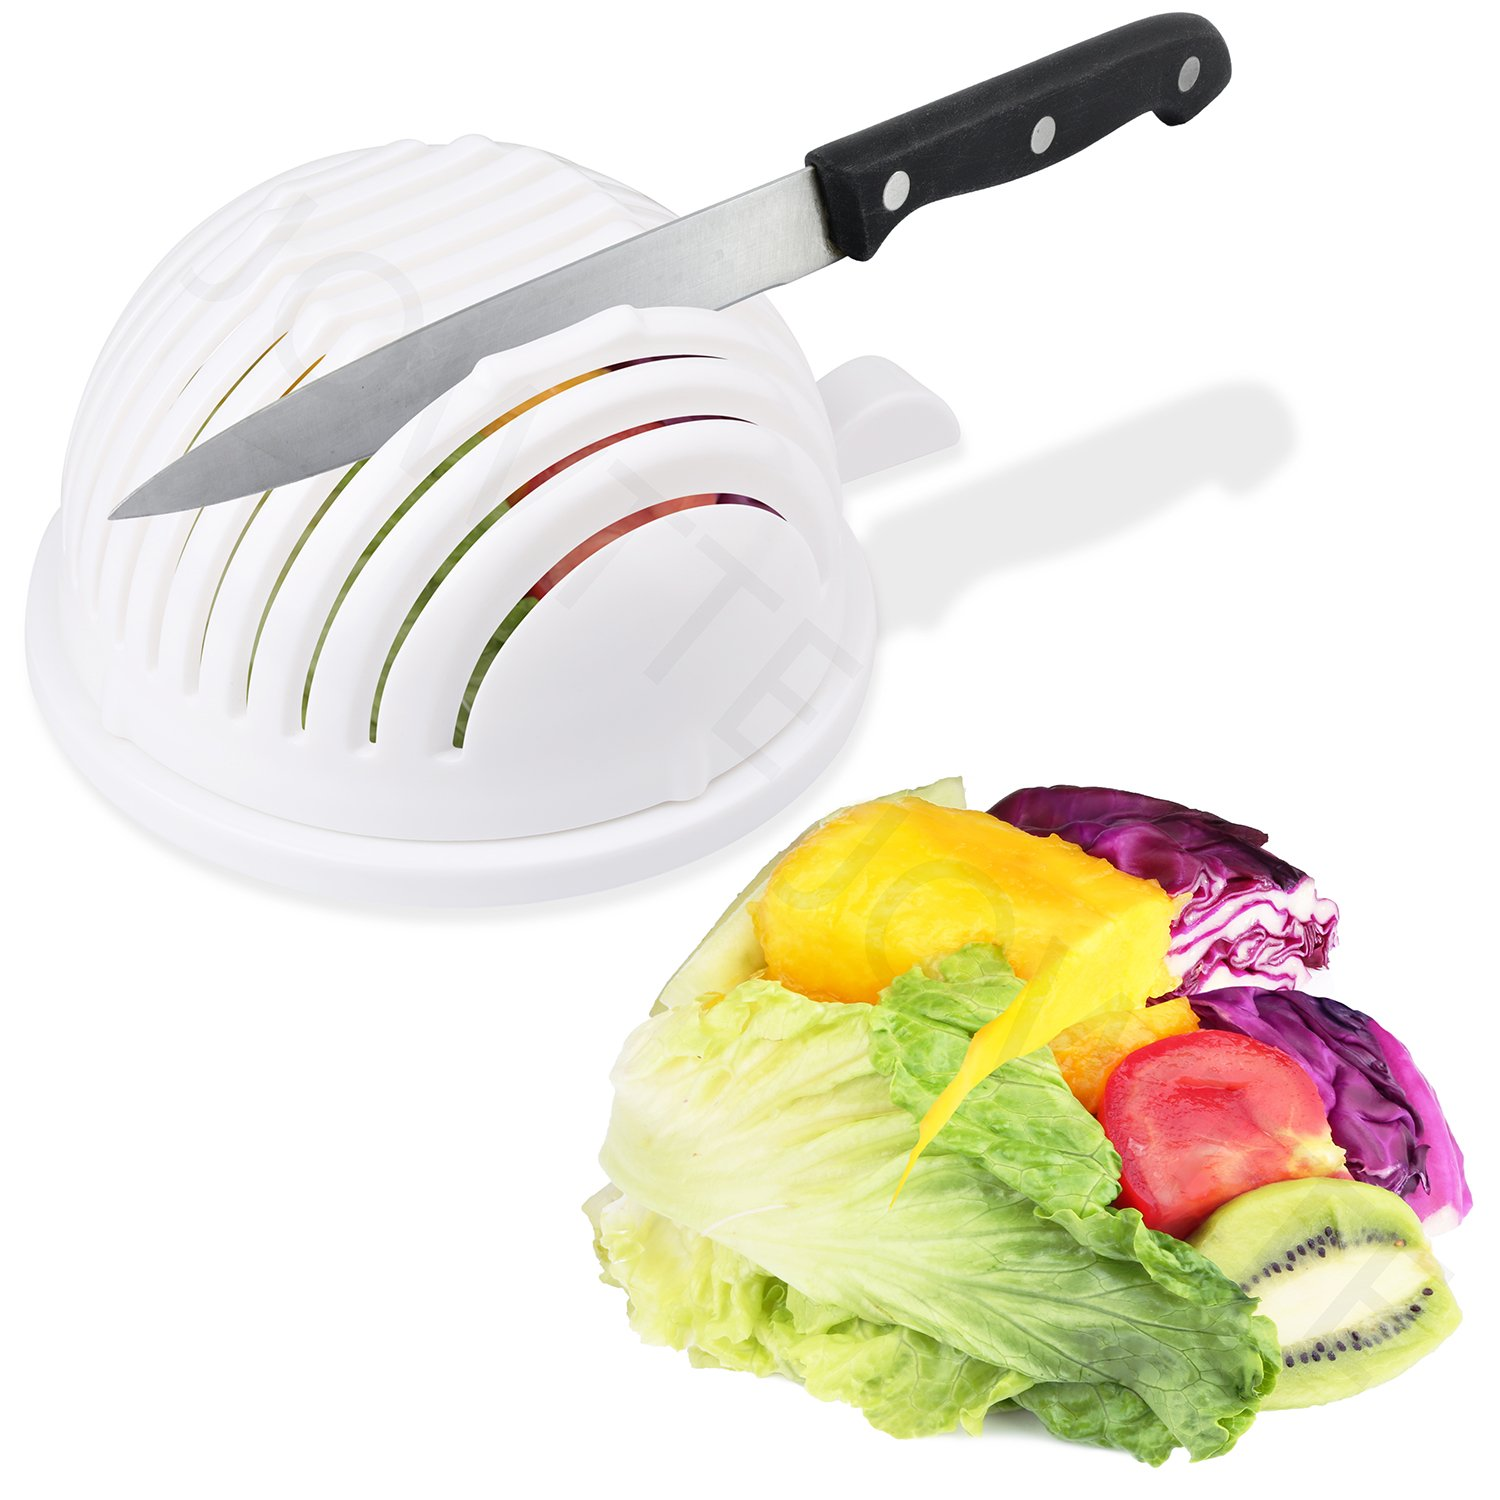 Salad Cutter Bowl Cuts Fruit or Vegetables in 60 Seconds - Dual Use Chopper(White)